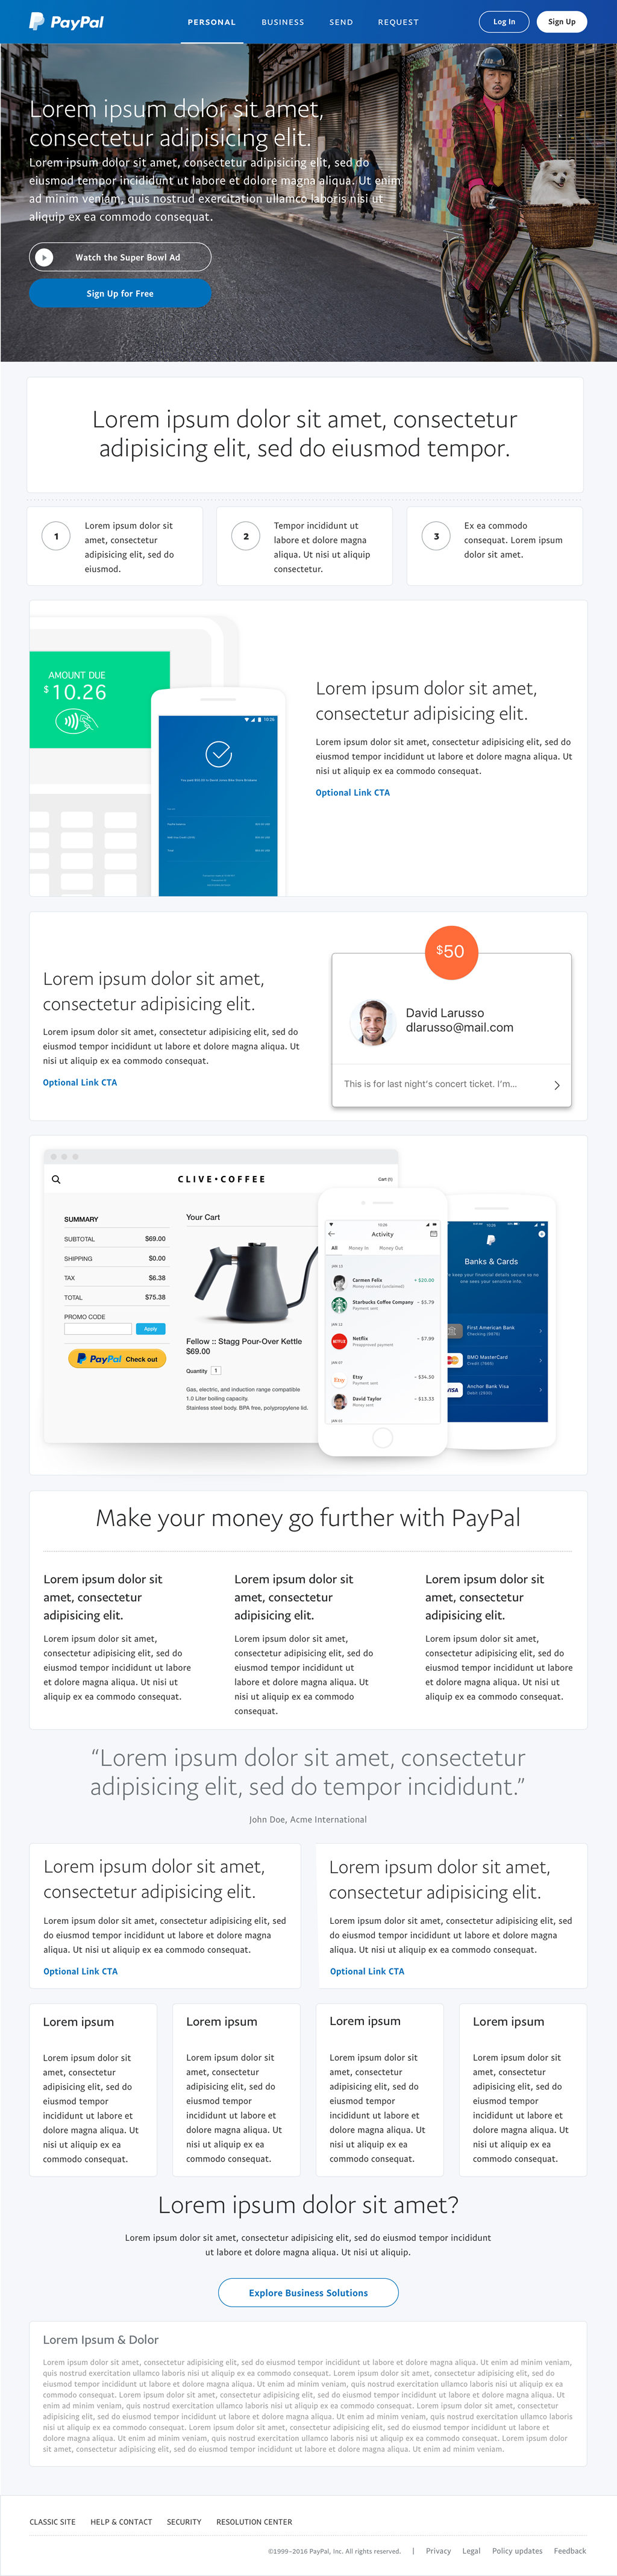 PayPal Home